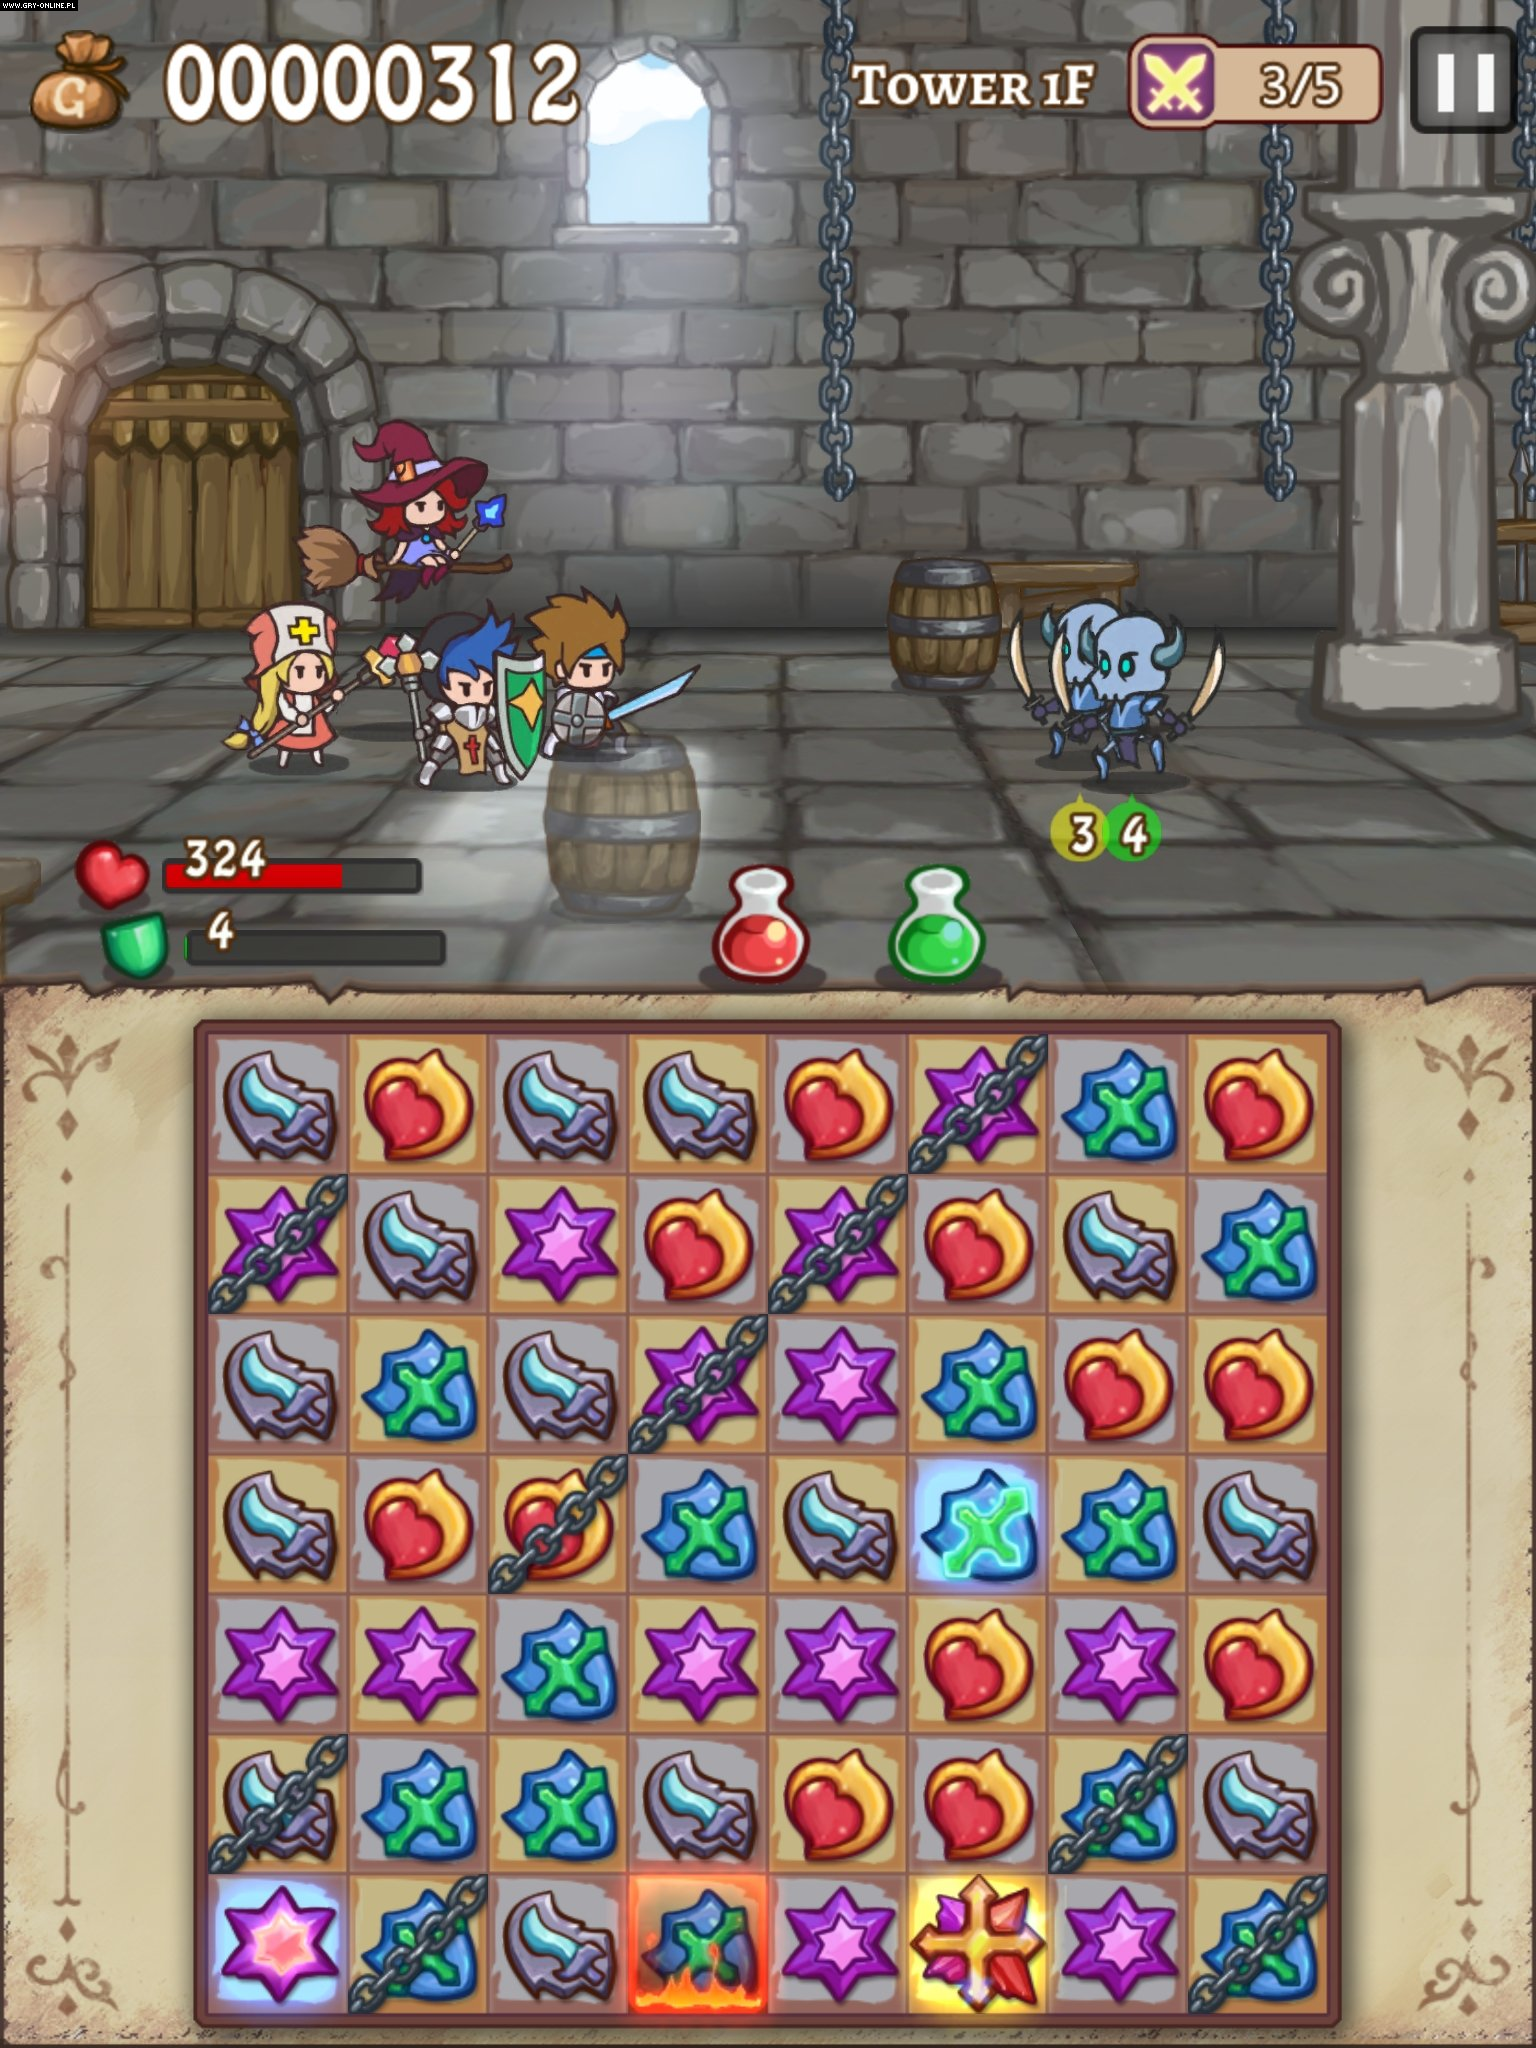 Hero Emblems iOS Gry Screen 7/7, HeatPot Games, Chun Lung Kuo